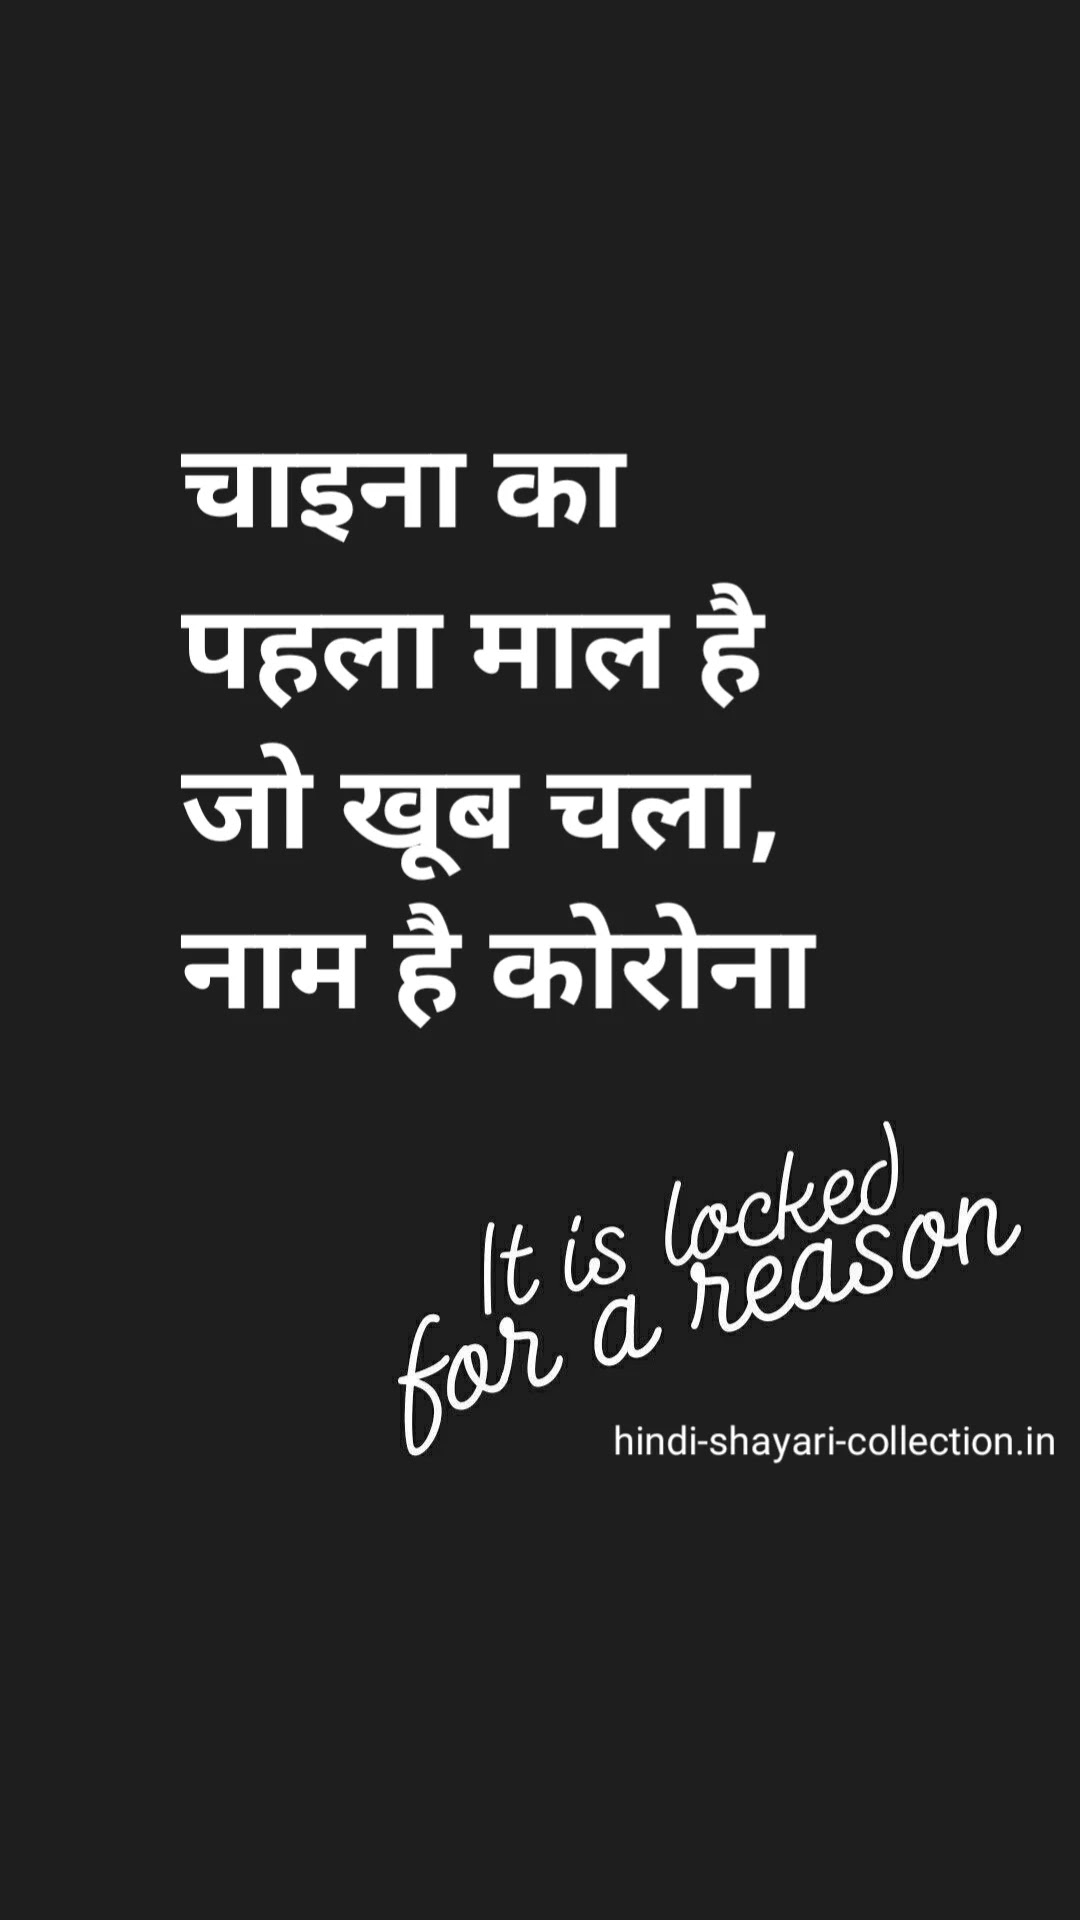 lockdown Shayari ,Corona Quotes In Hindi , lockdown shayari dp, corona dp,